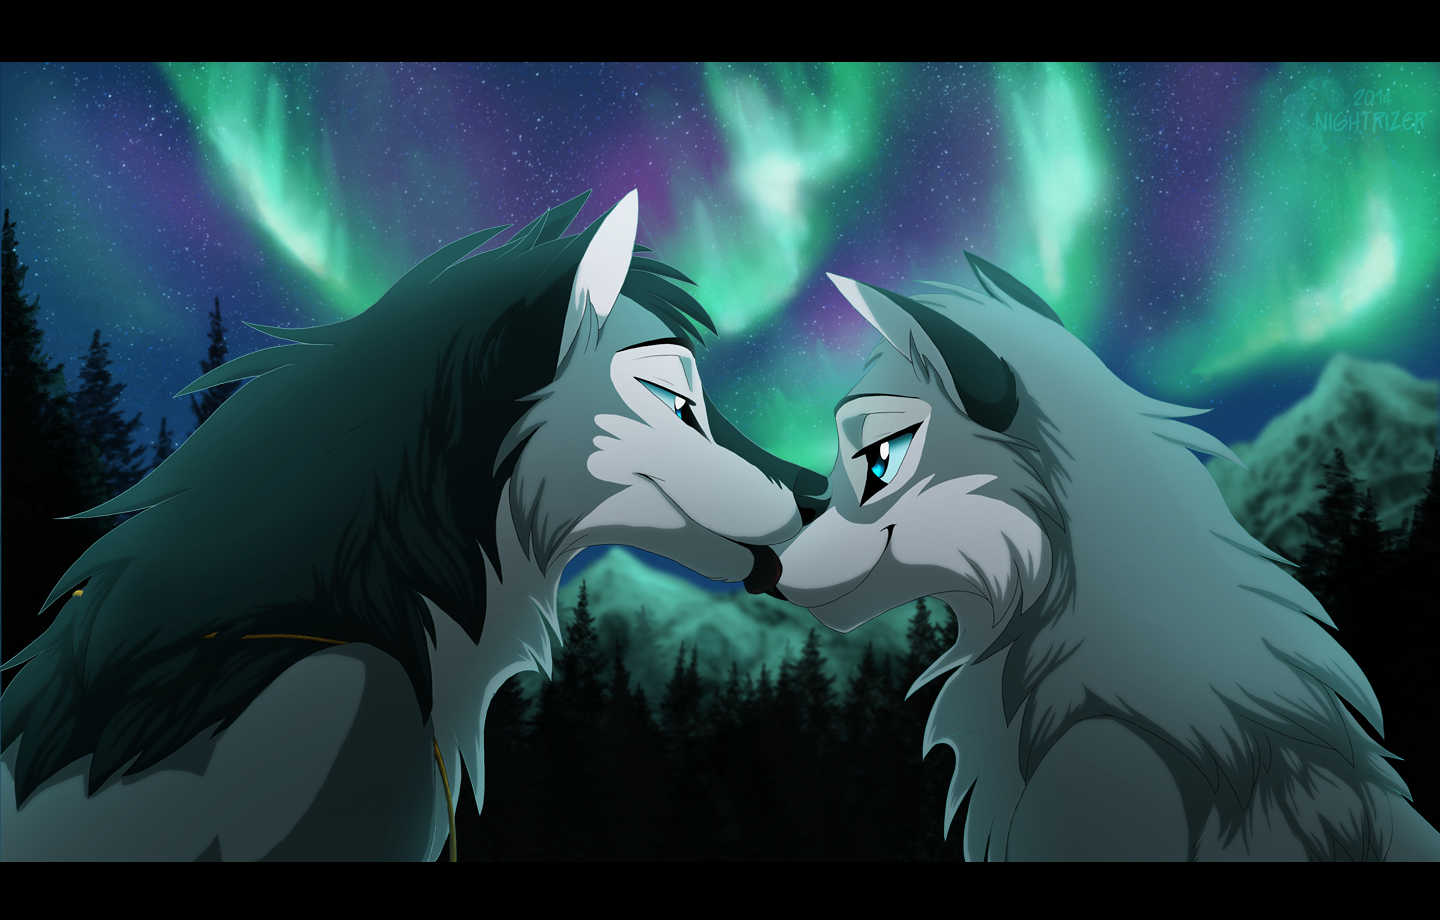 Love 39 s lights by nightrizer on deviantart - Anime wolves in love ...